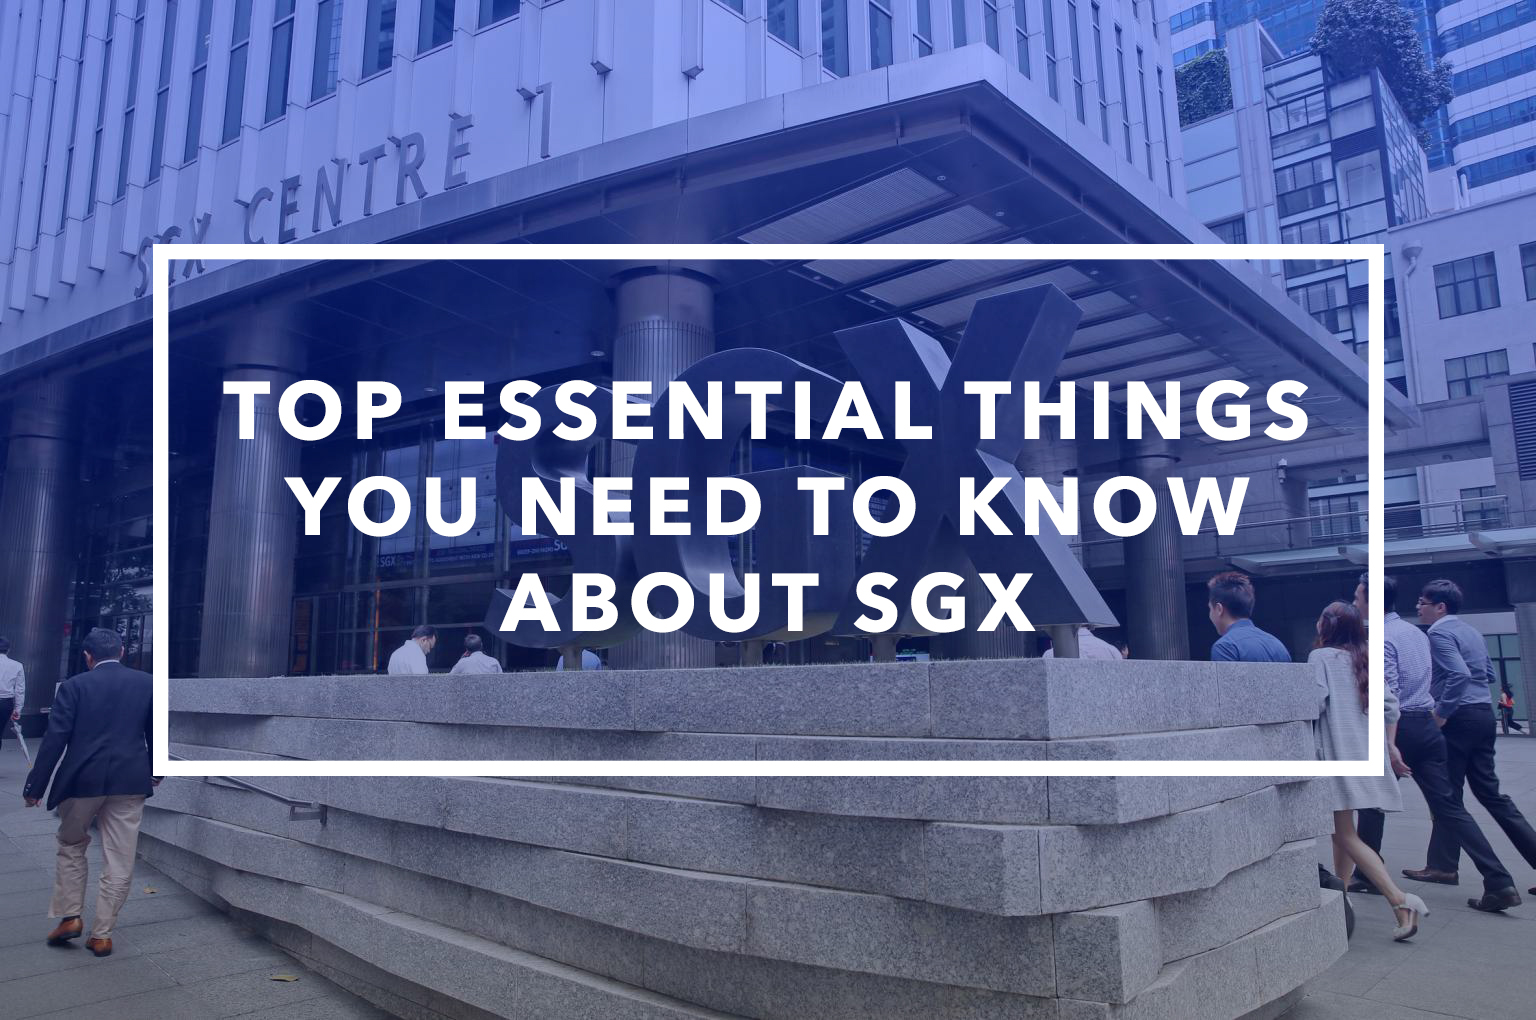 Top Essential Things You Need To Know About SGX